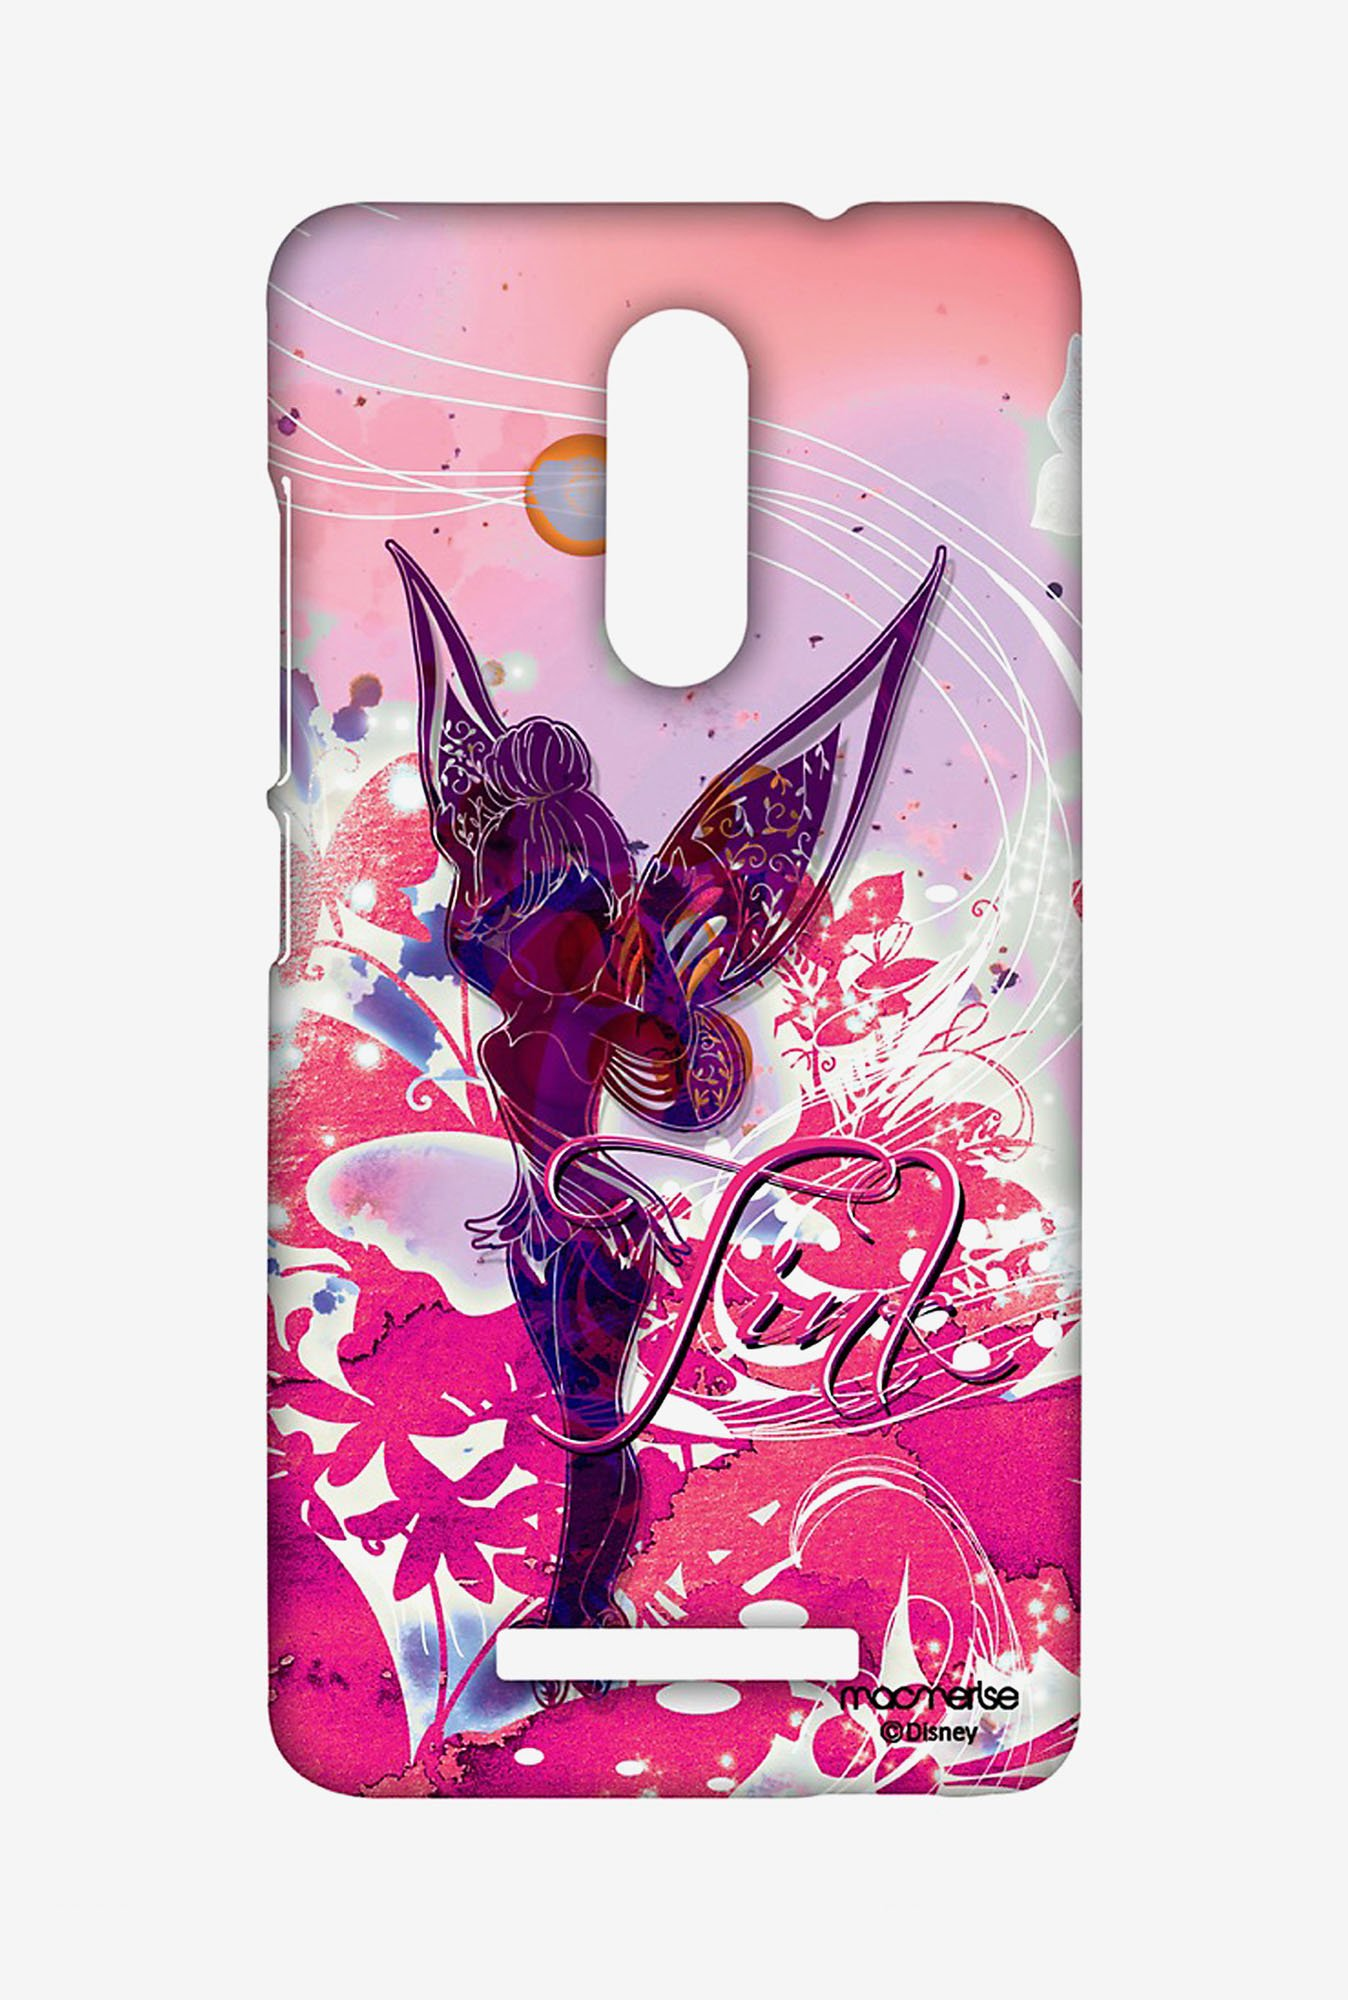 Macmerise XACN3SDD0110 Tink Sublime Case for Xiaomi Redmi Note 3